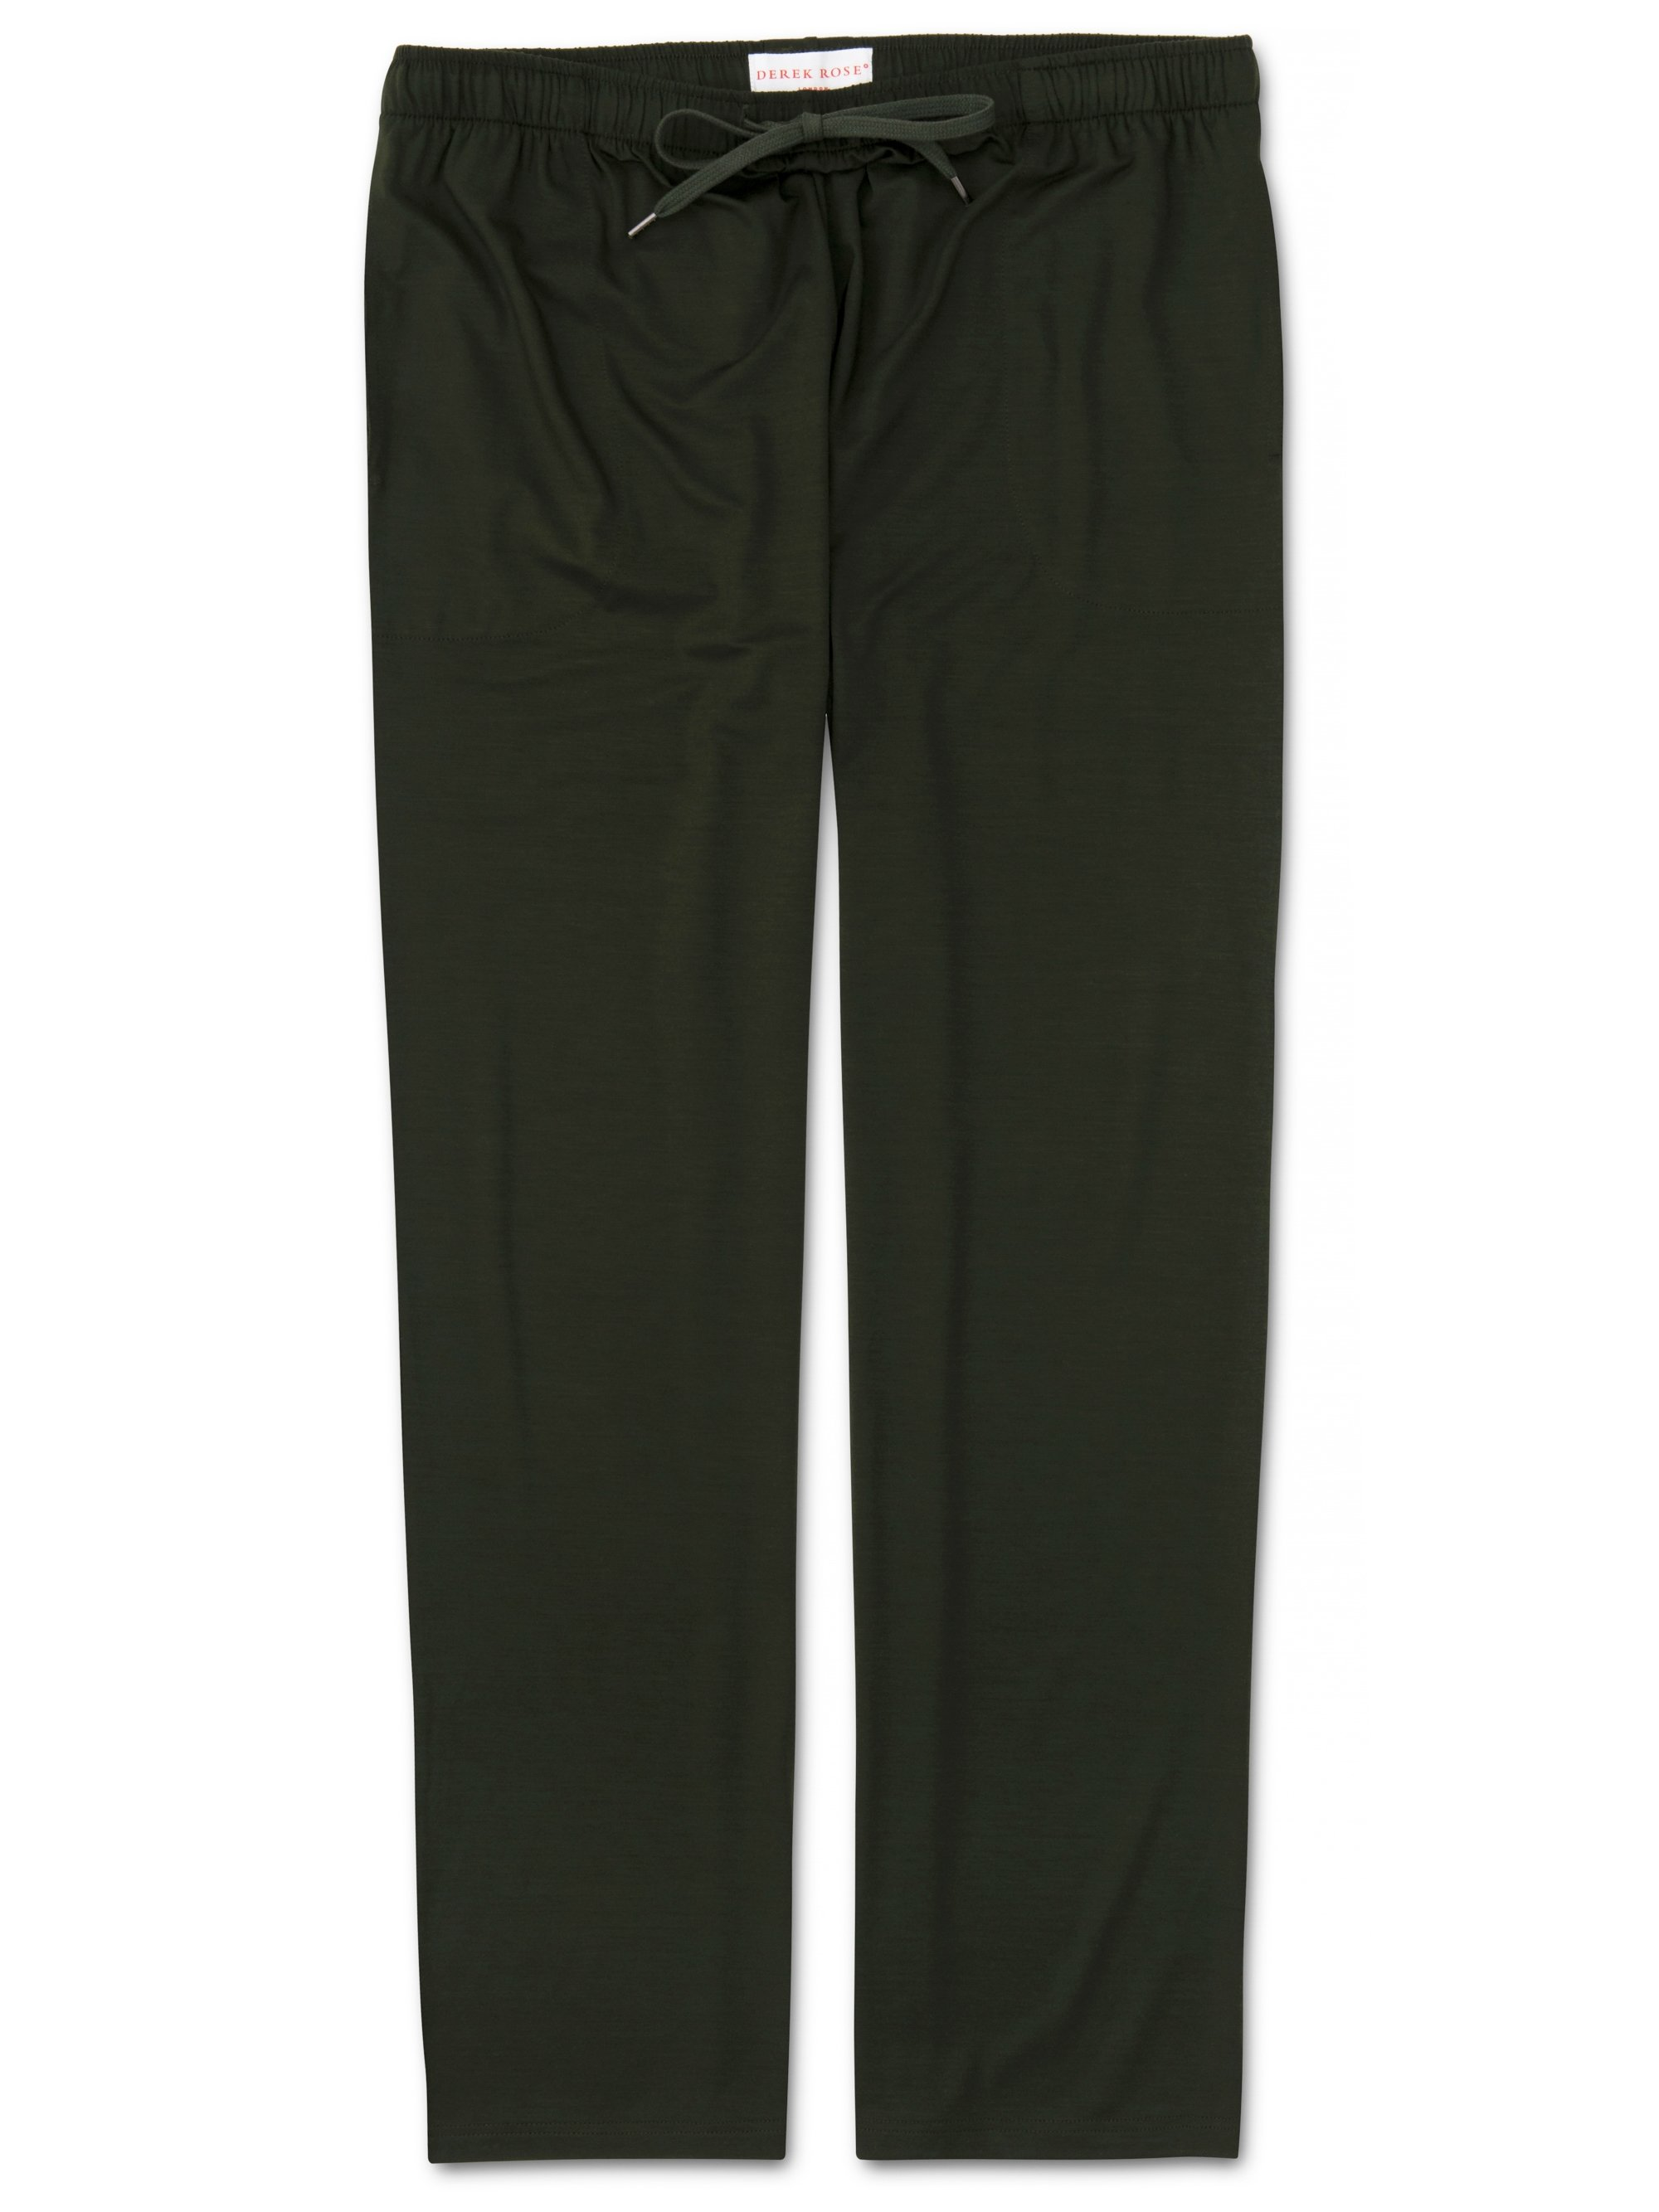 Men's Jersey Trousers Basel 9 Micro Modal Stretch Green